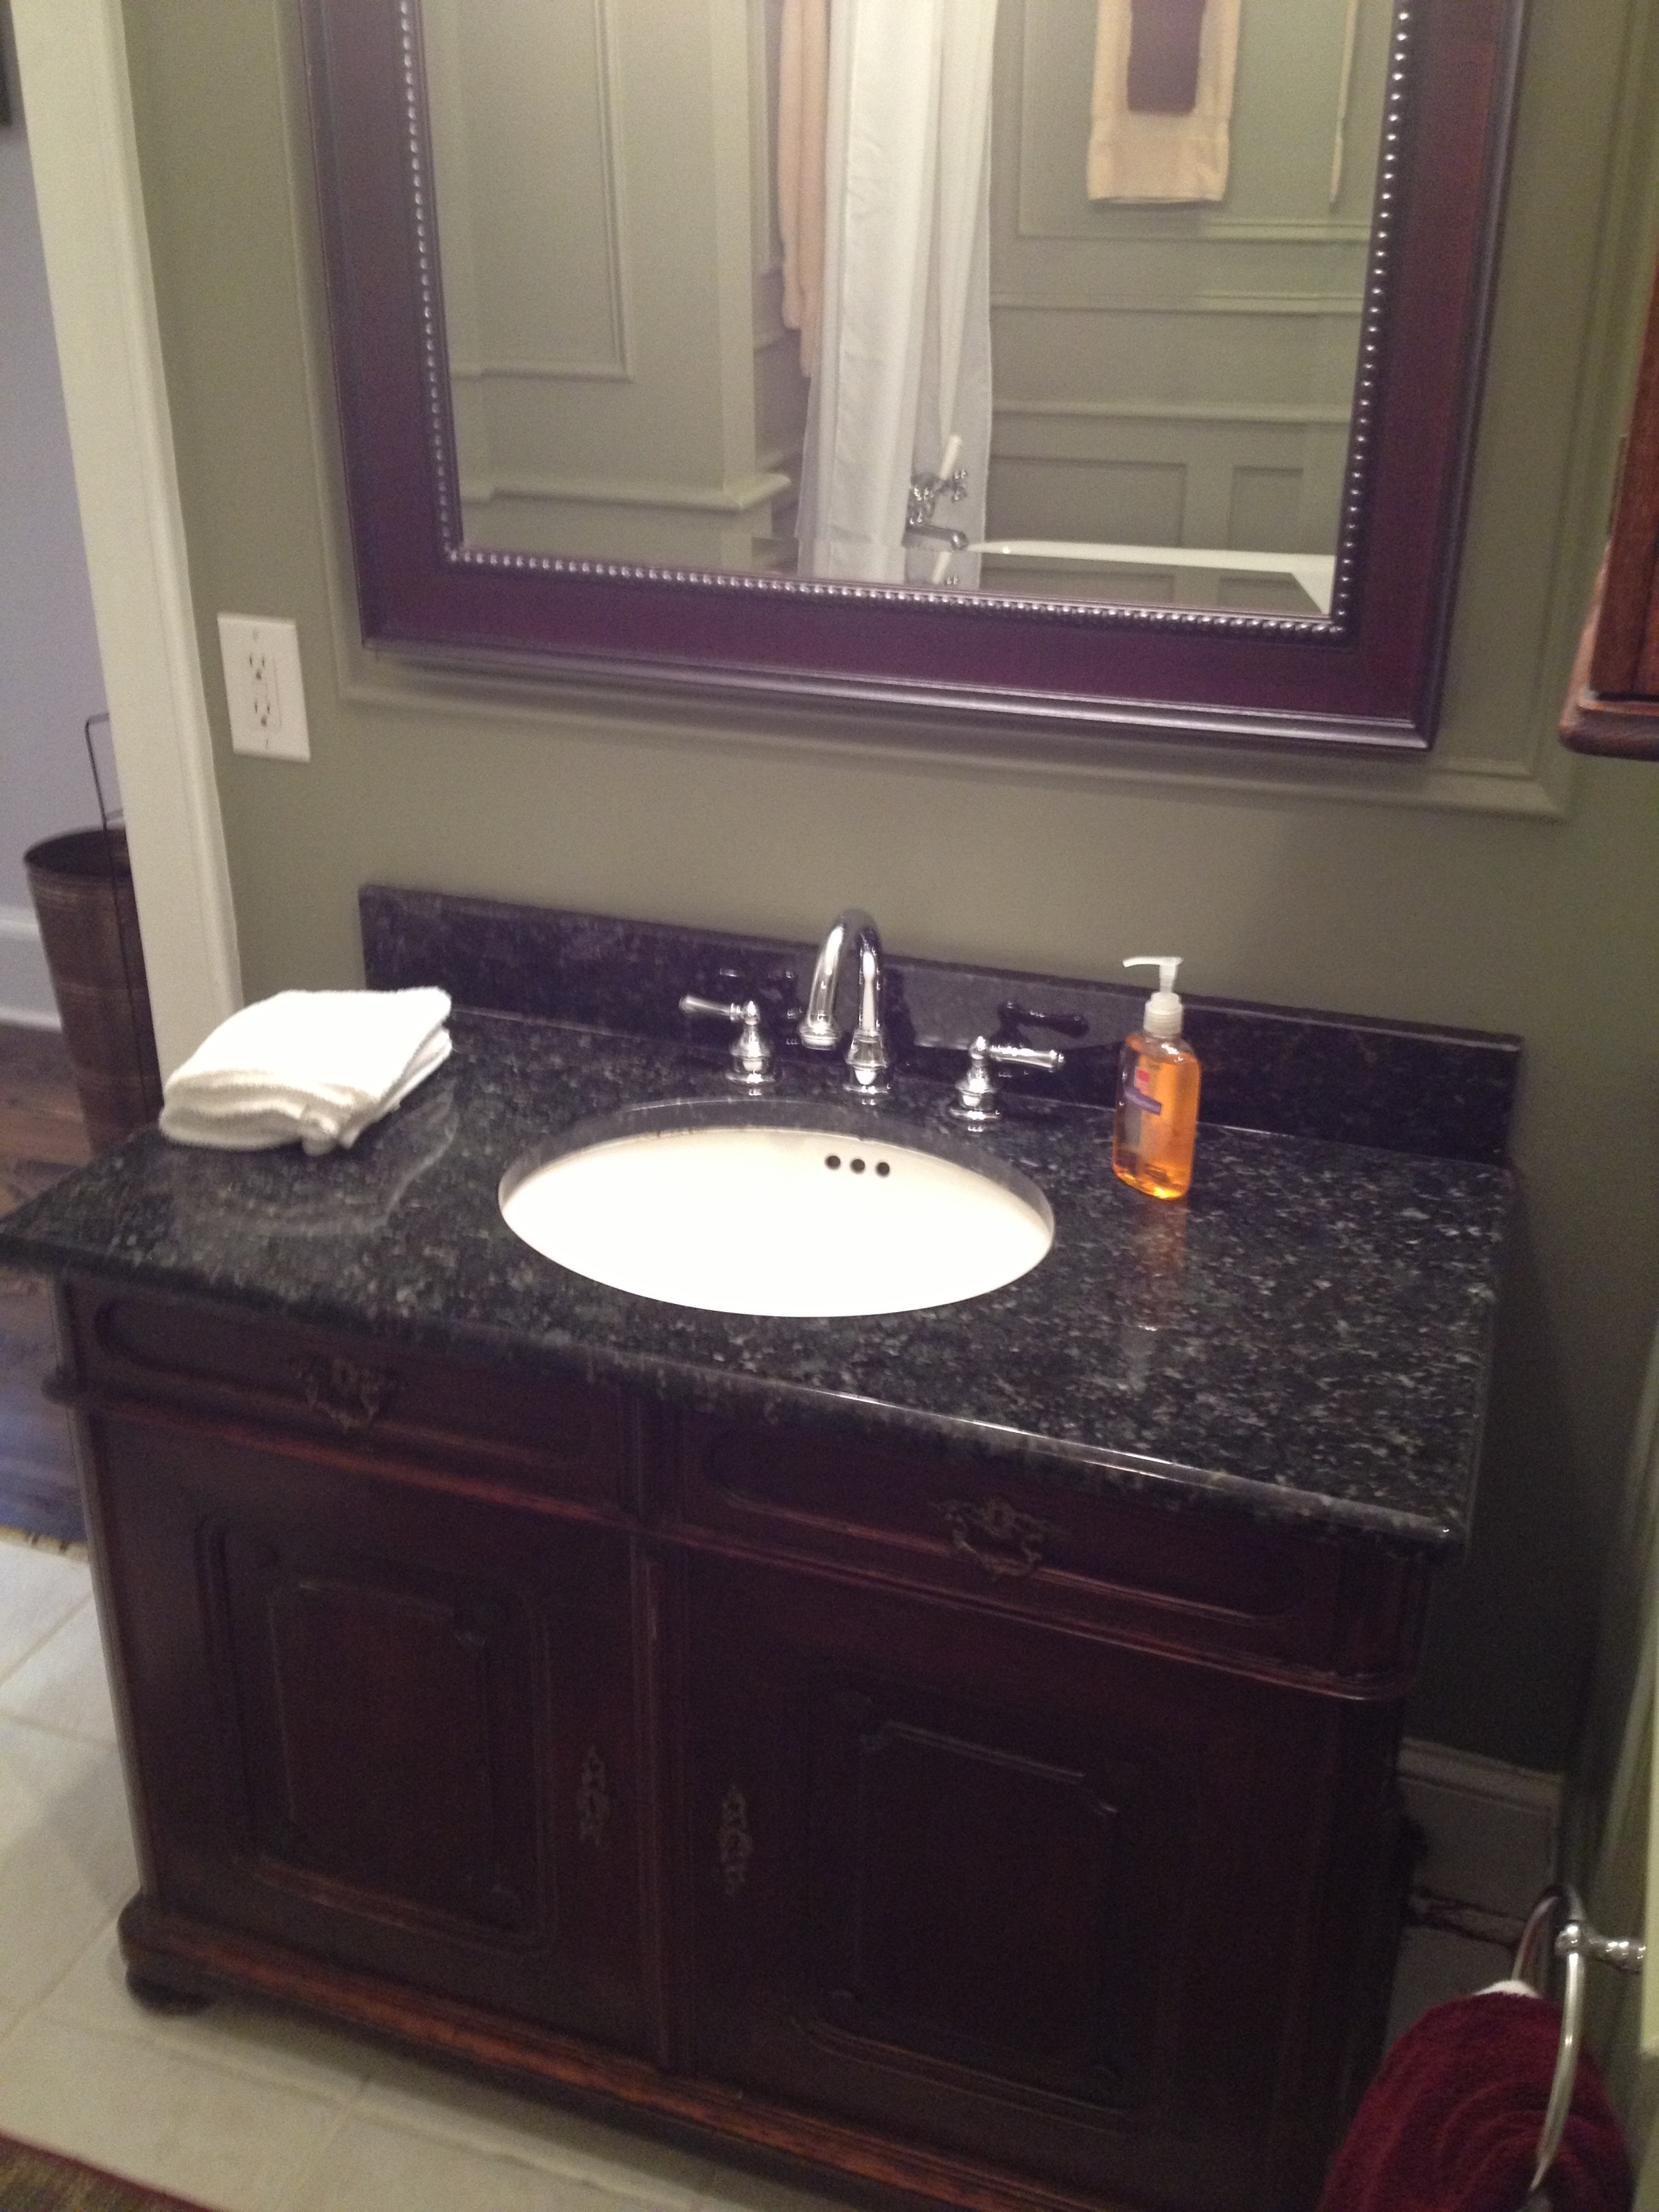 4th Ward renovation bath vanity